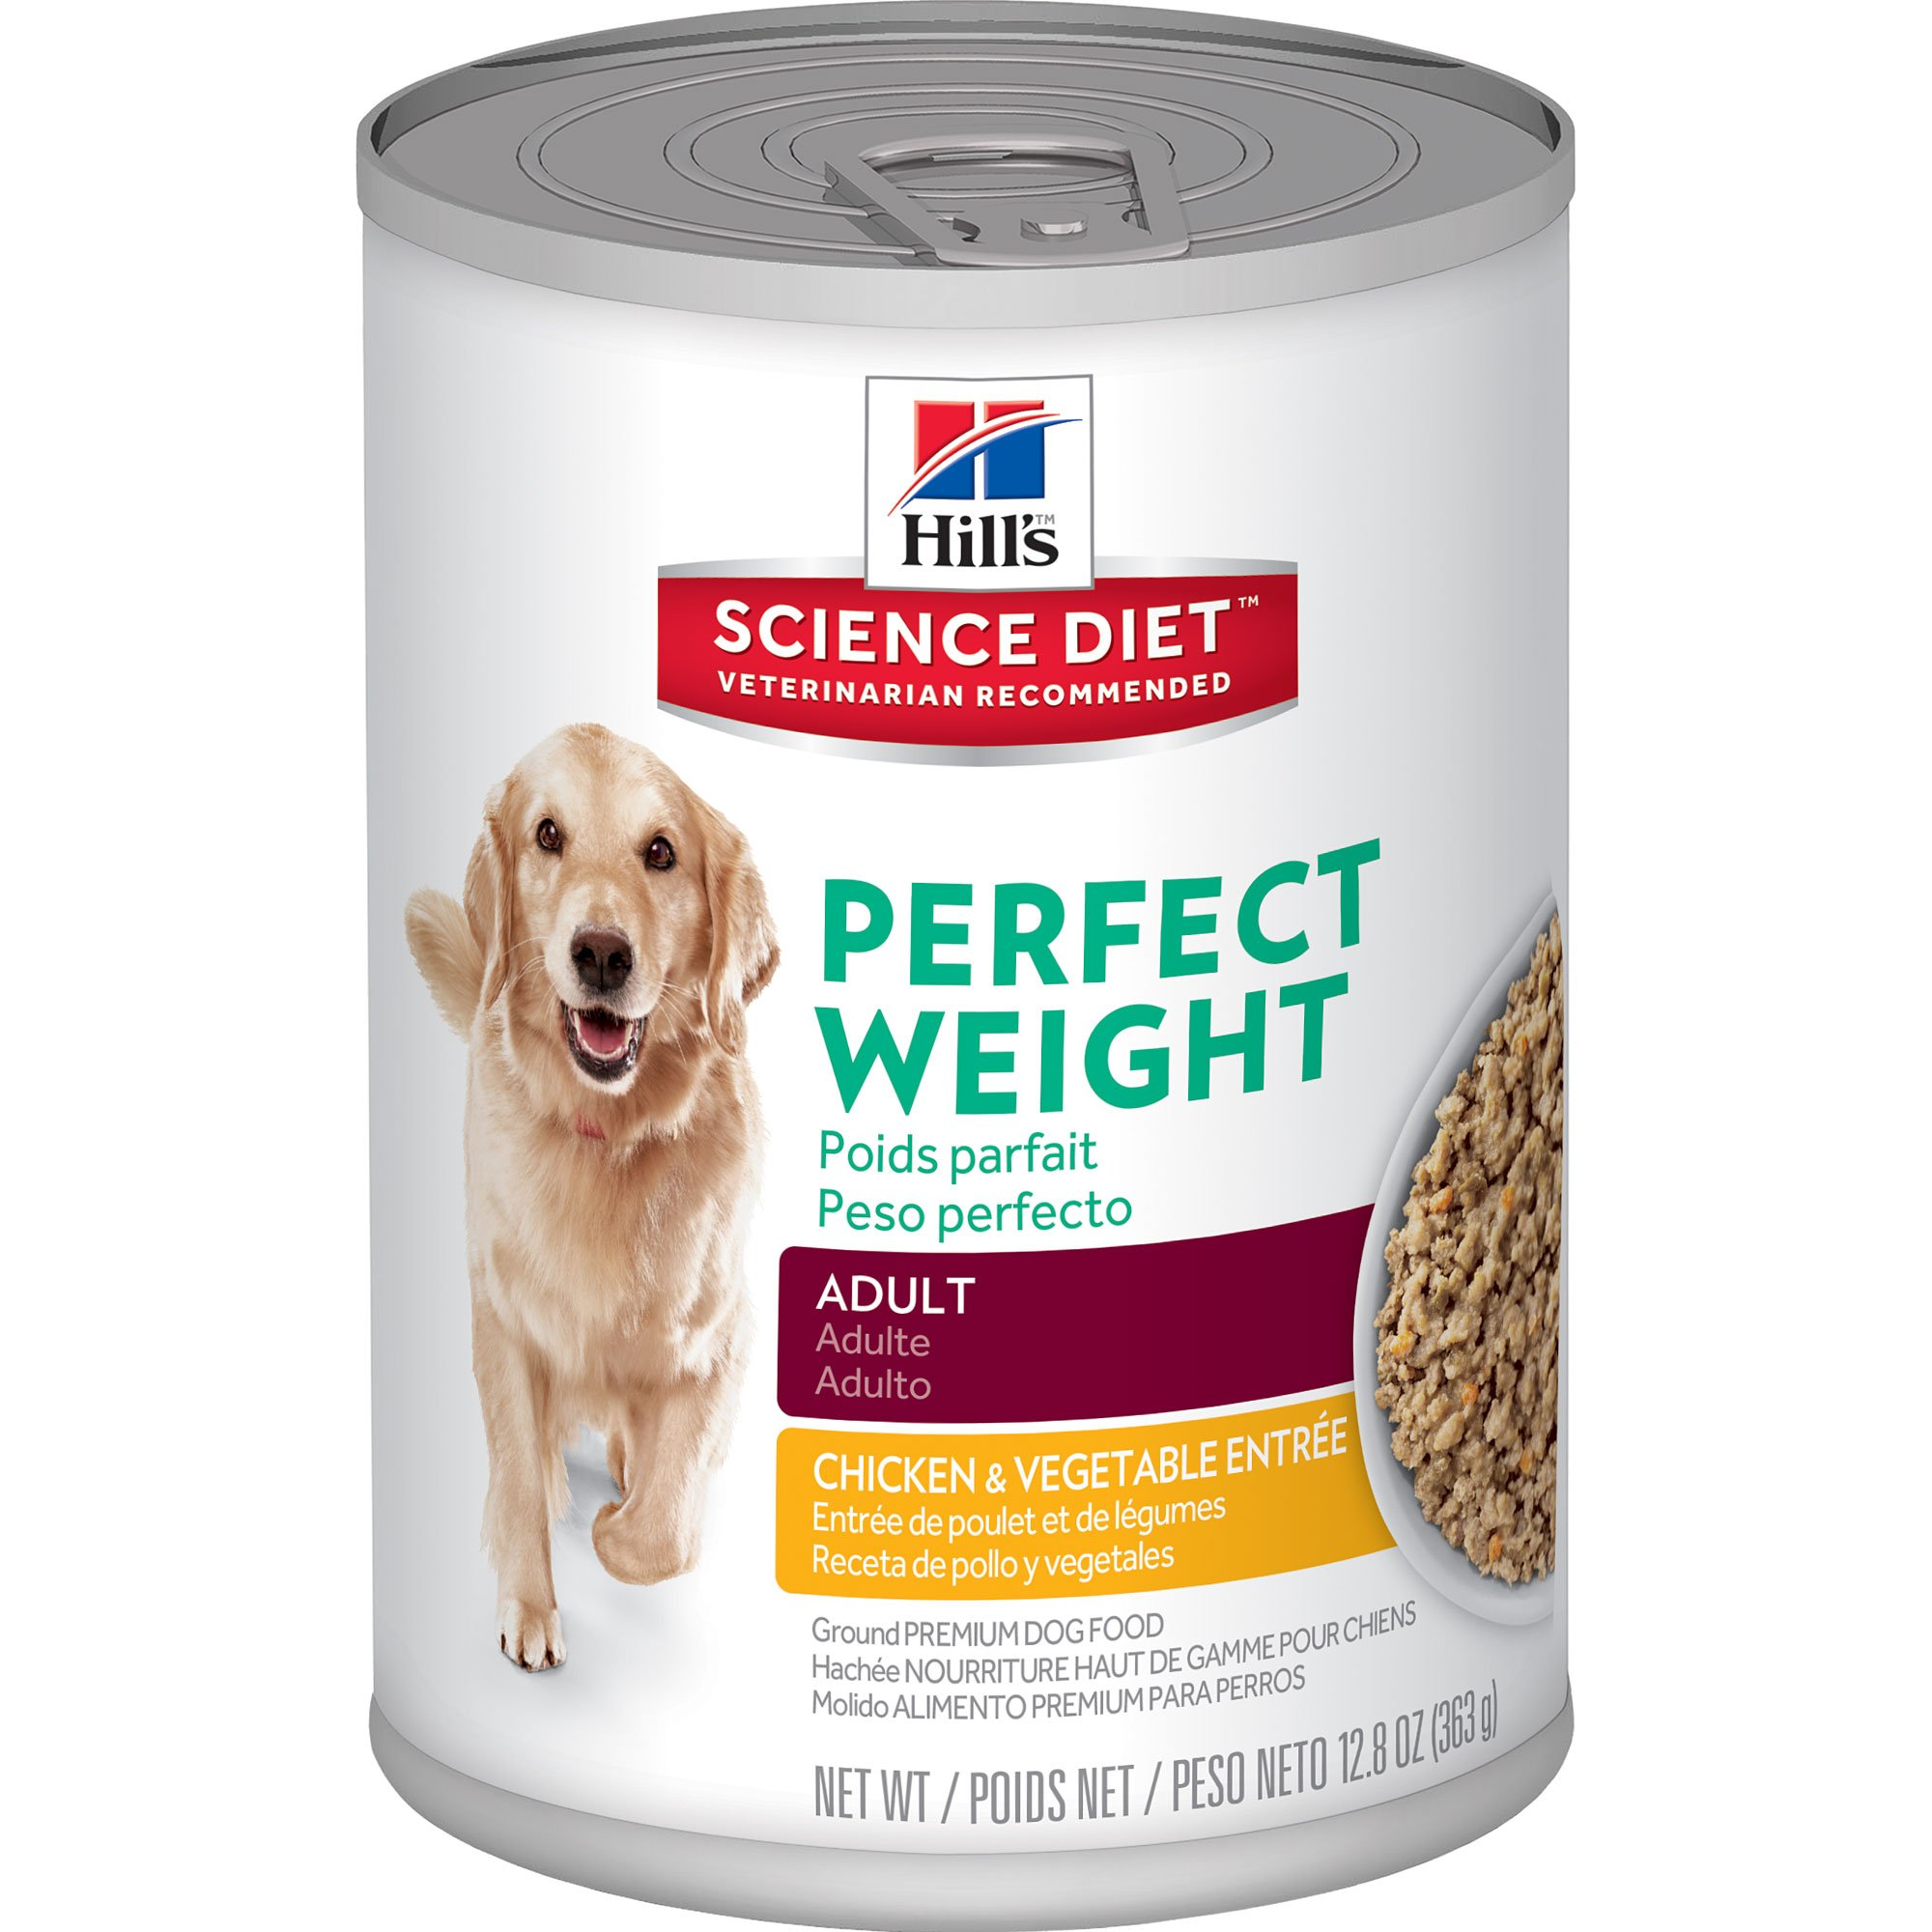 Hills science diet perfect weight chicken vegetables canned hills science diet perfect weight chicken vegetables canned adult dog food petco forumfinder Image collections